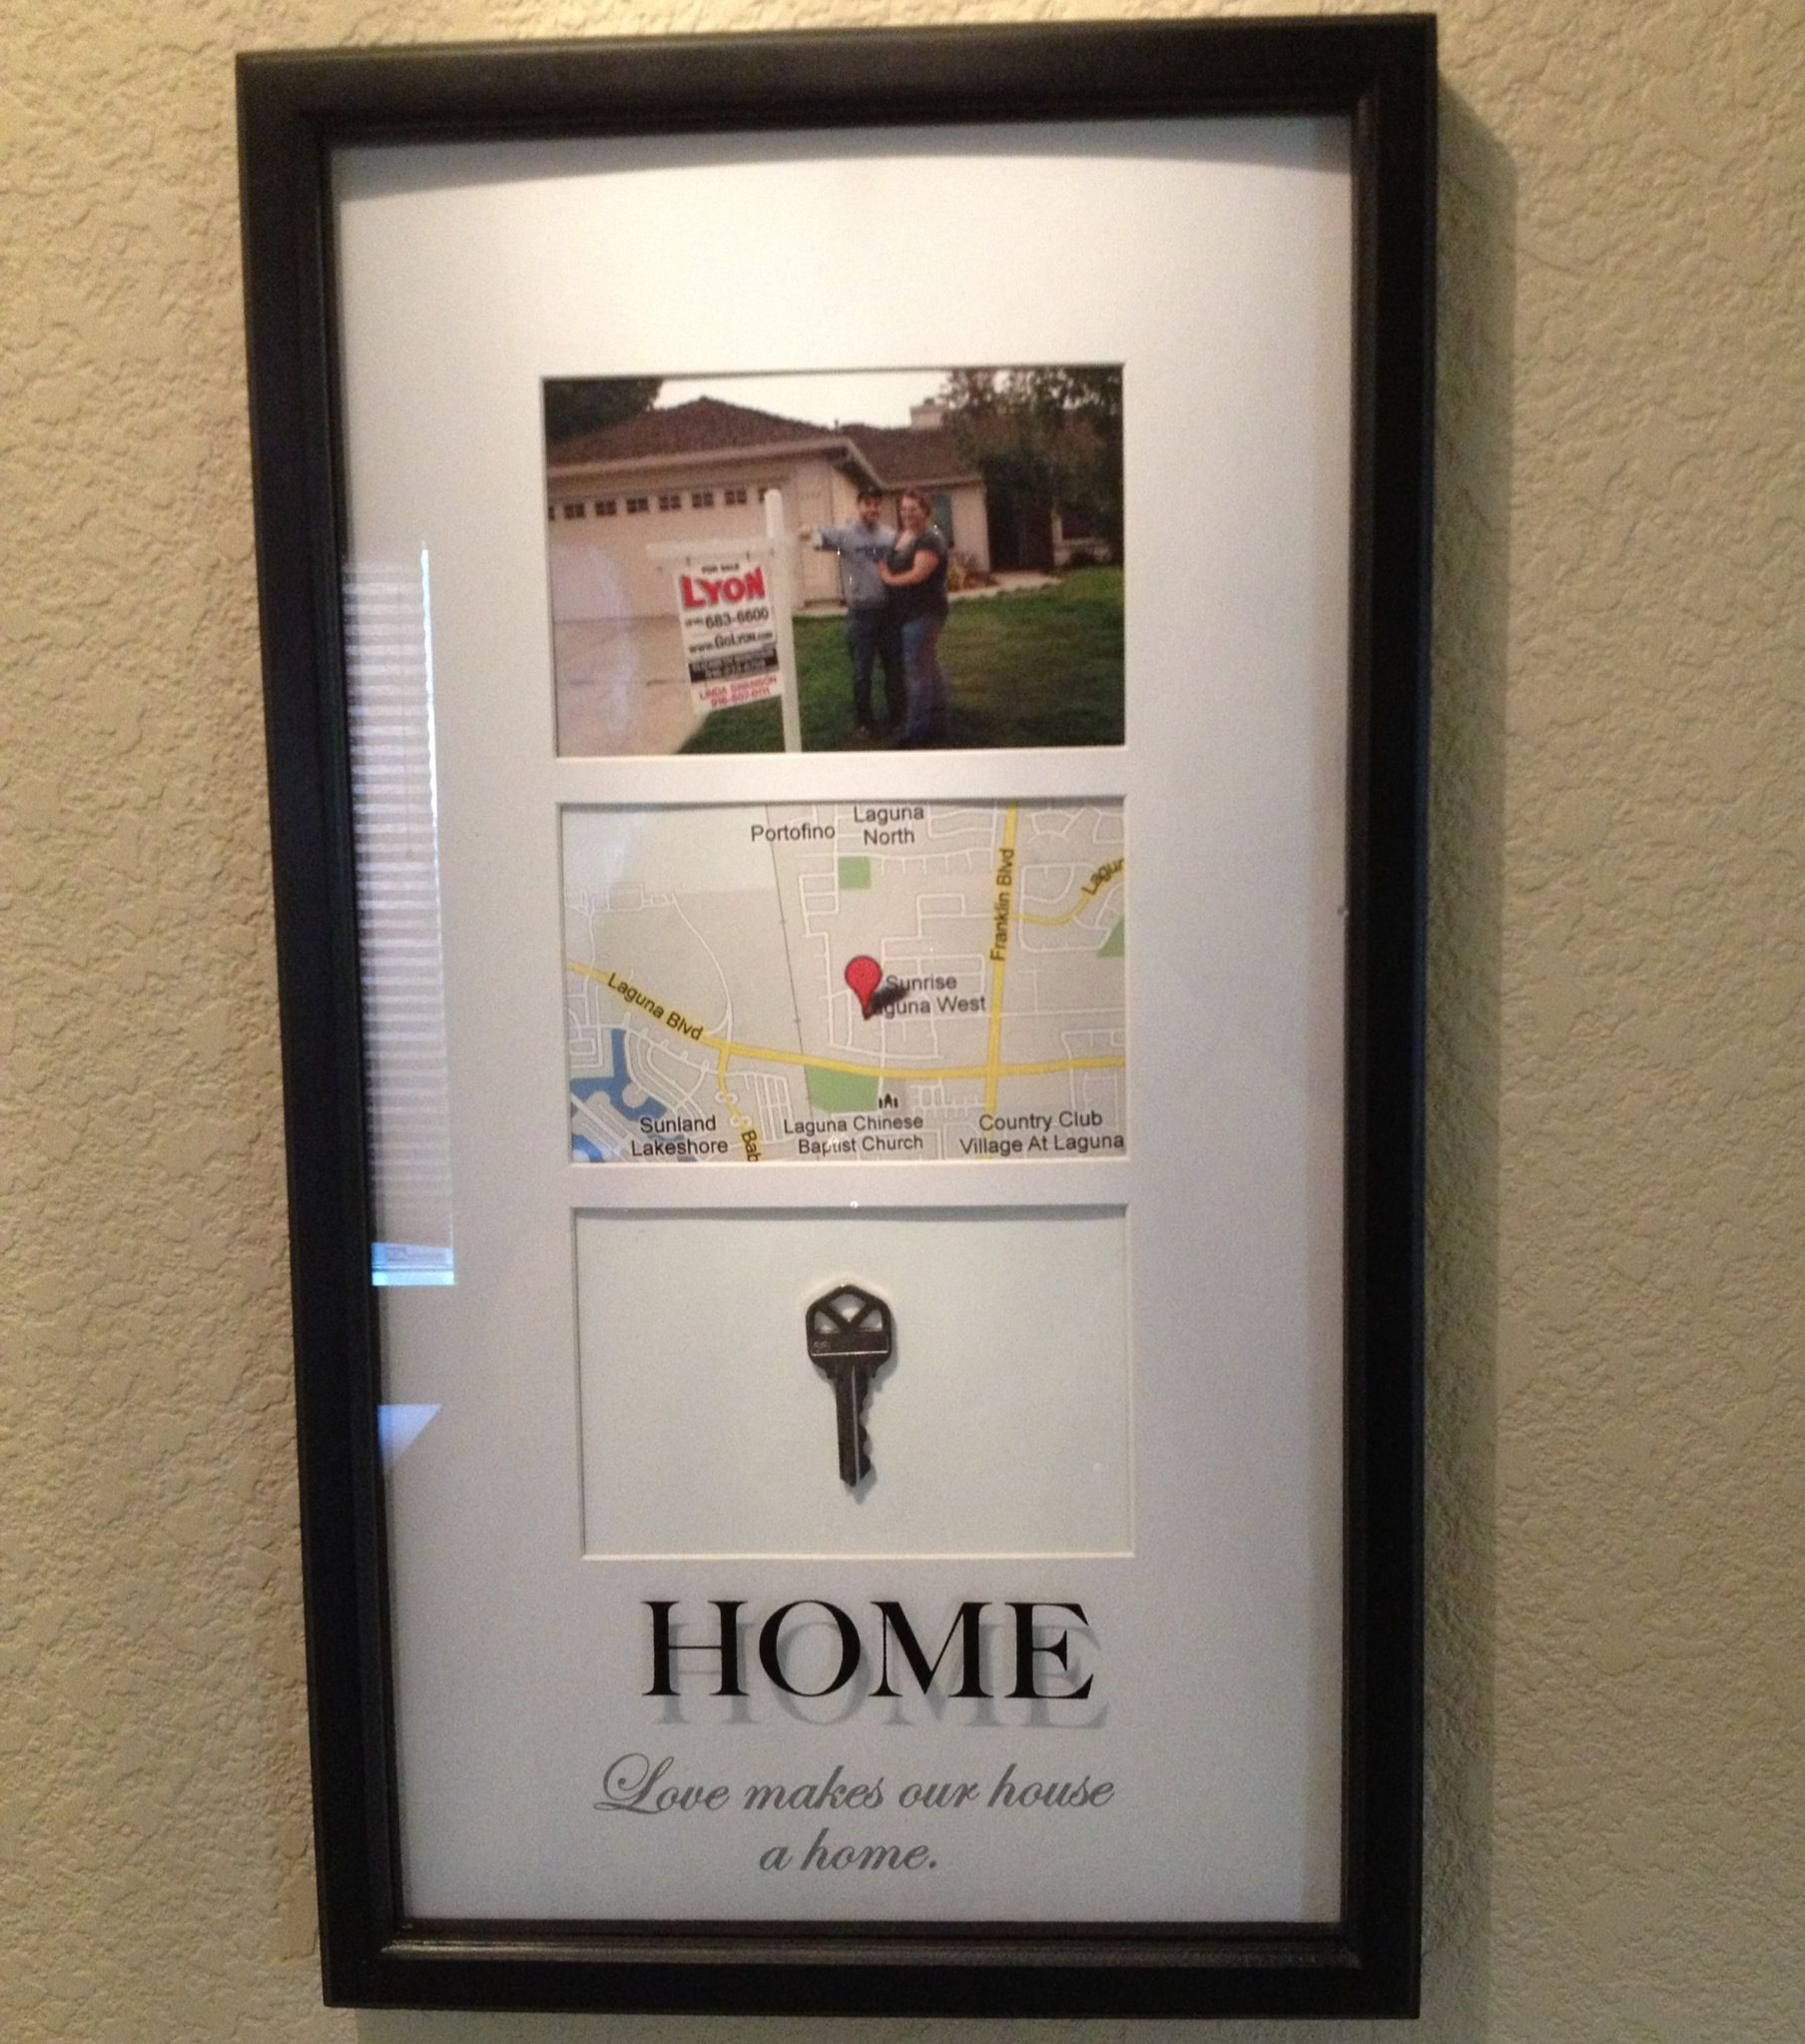 First House Gift Ideas Frame From Target Picture With For Sale Sign Map Of